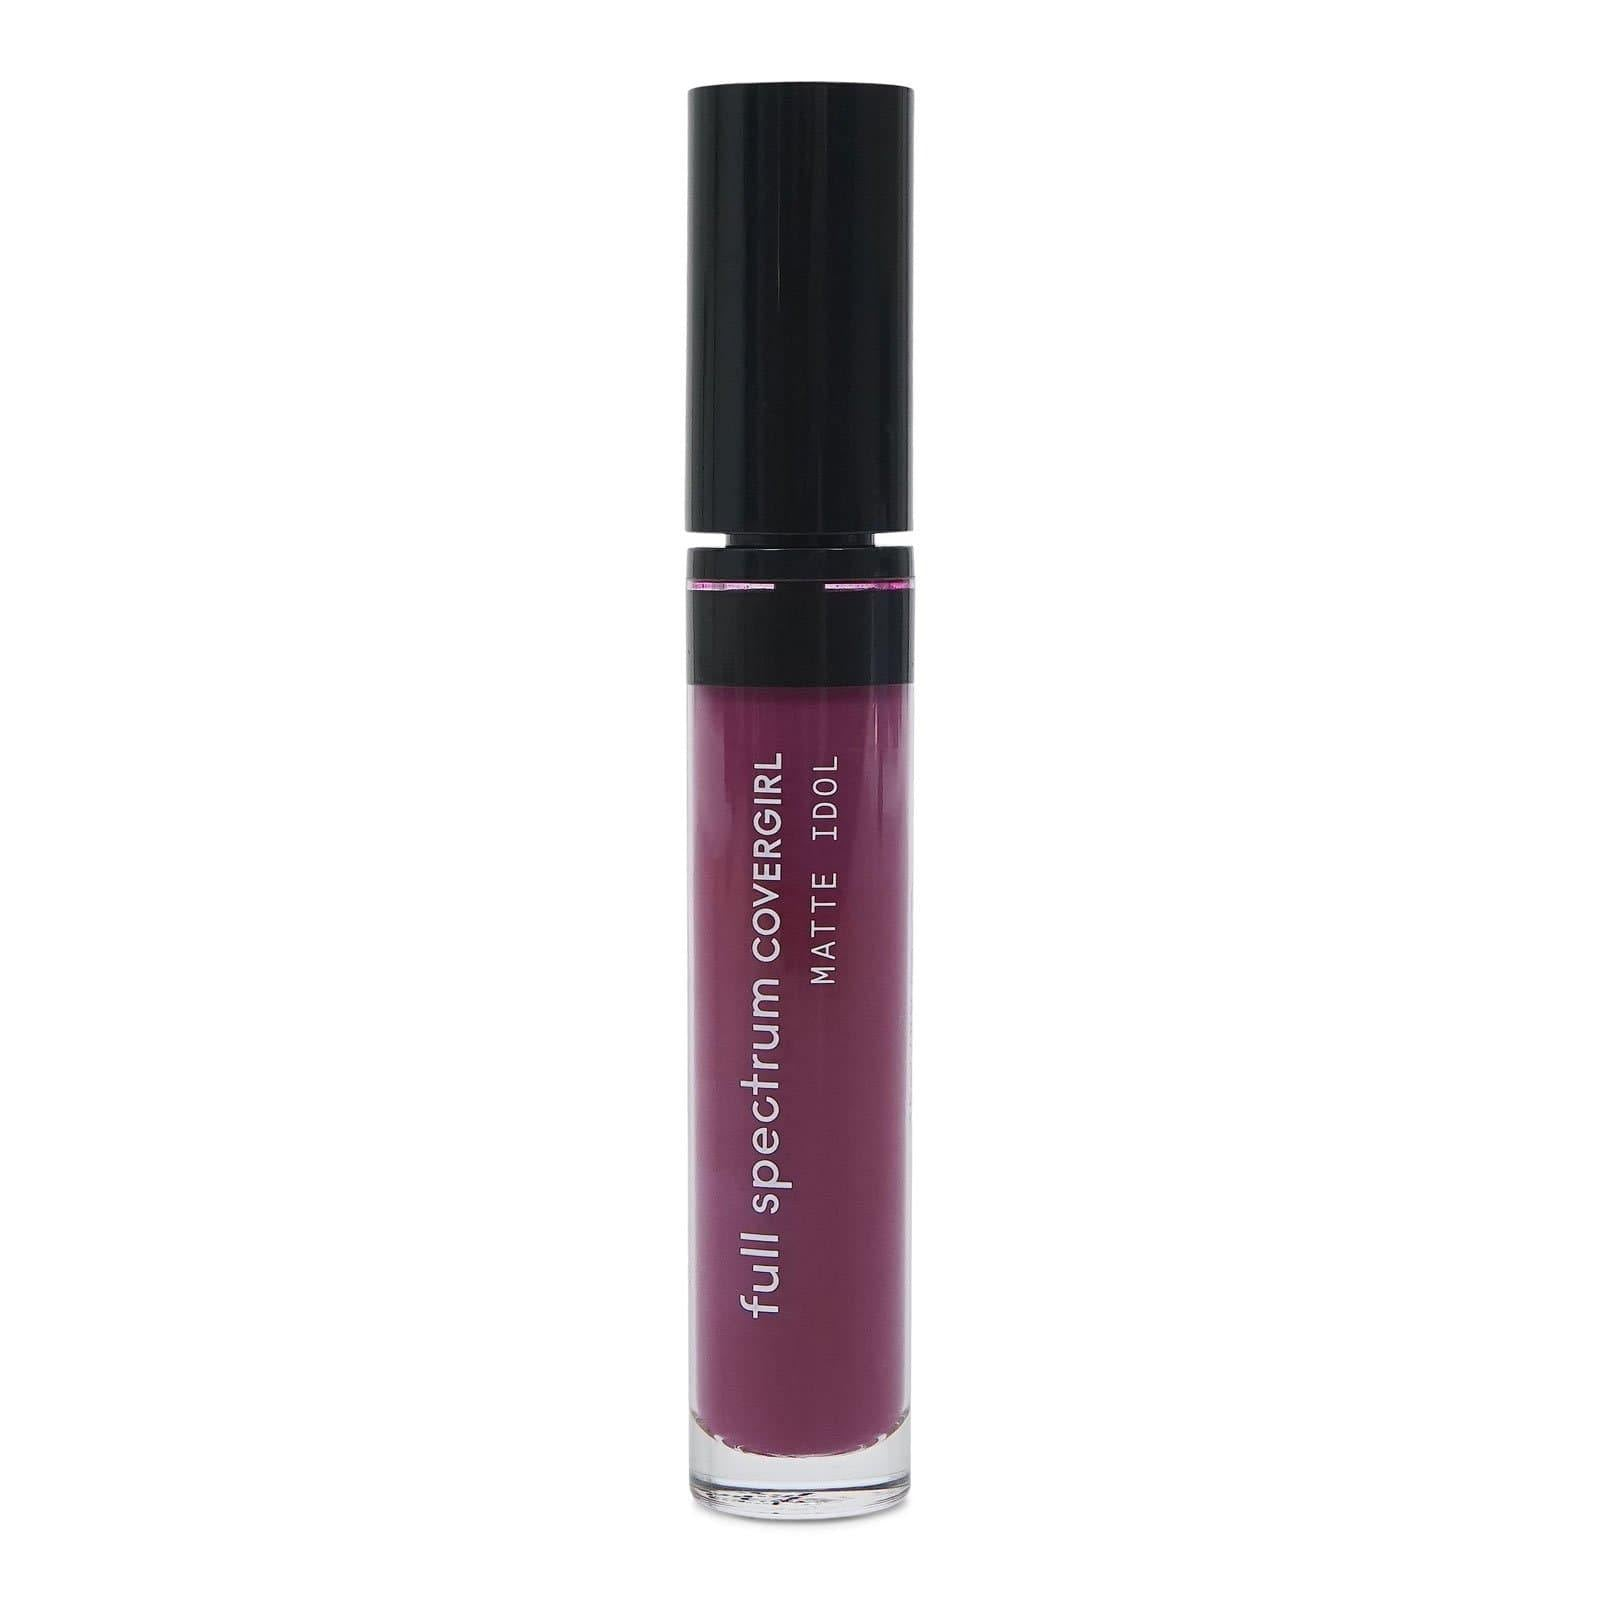 COVERGIRL MATTE IDOL LIQUID LIPSTICK - FETISH (12/cs)